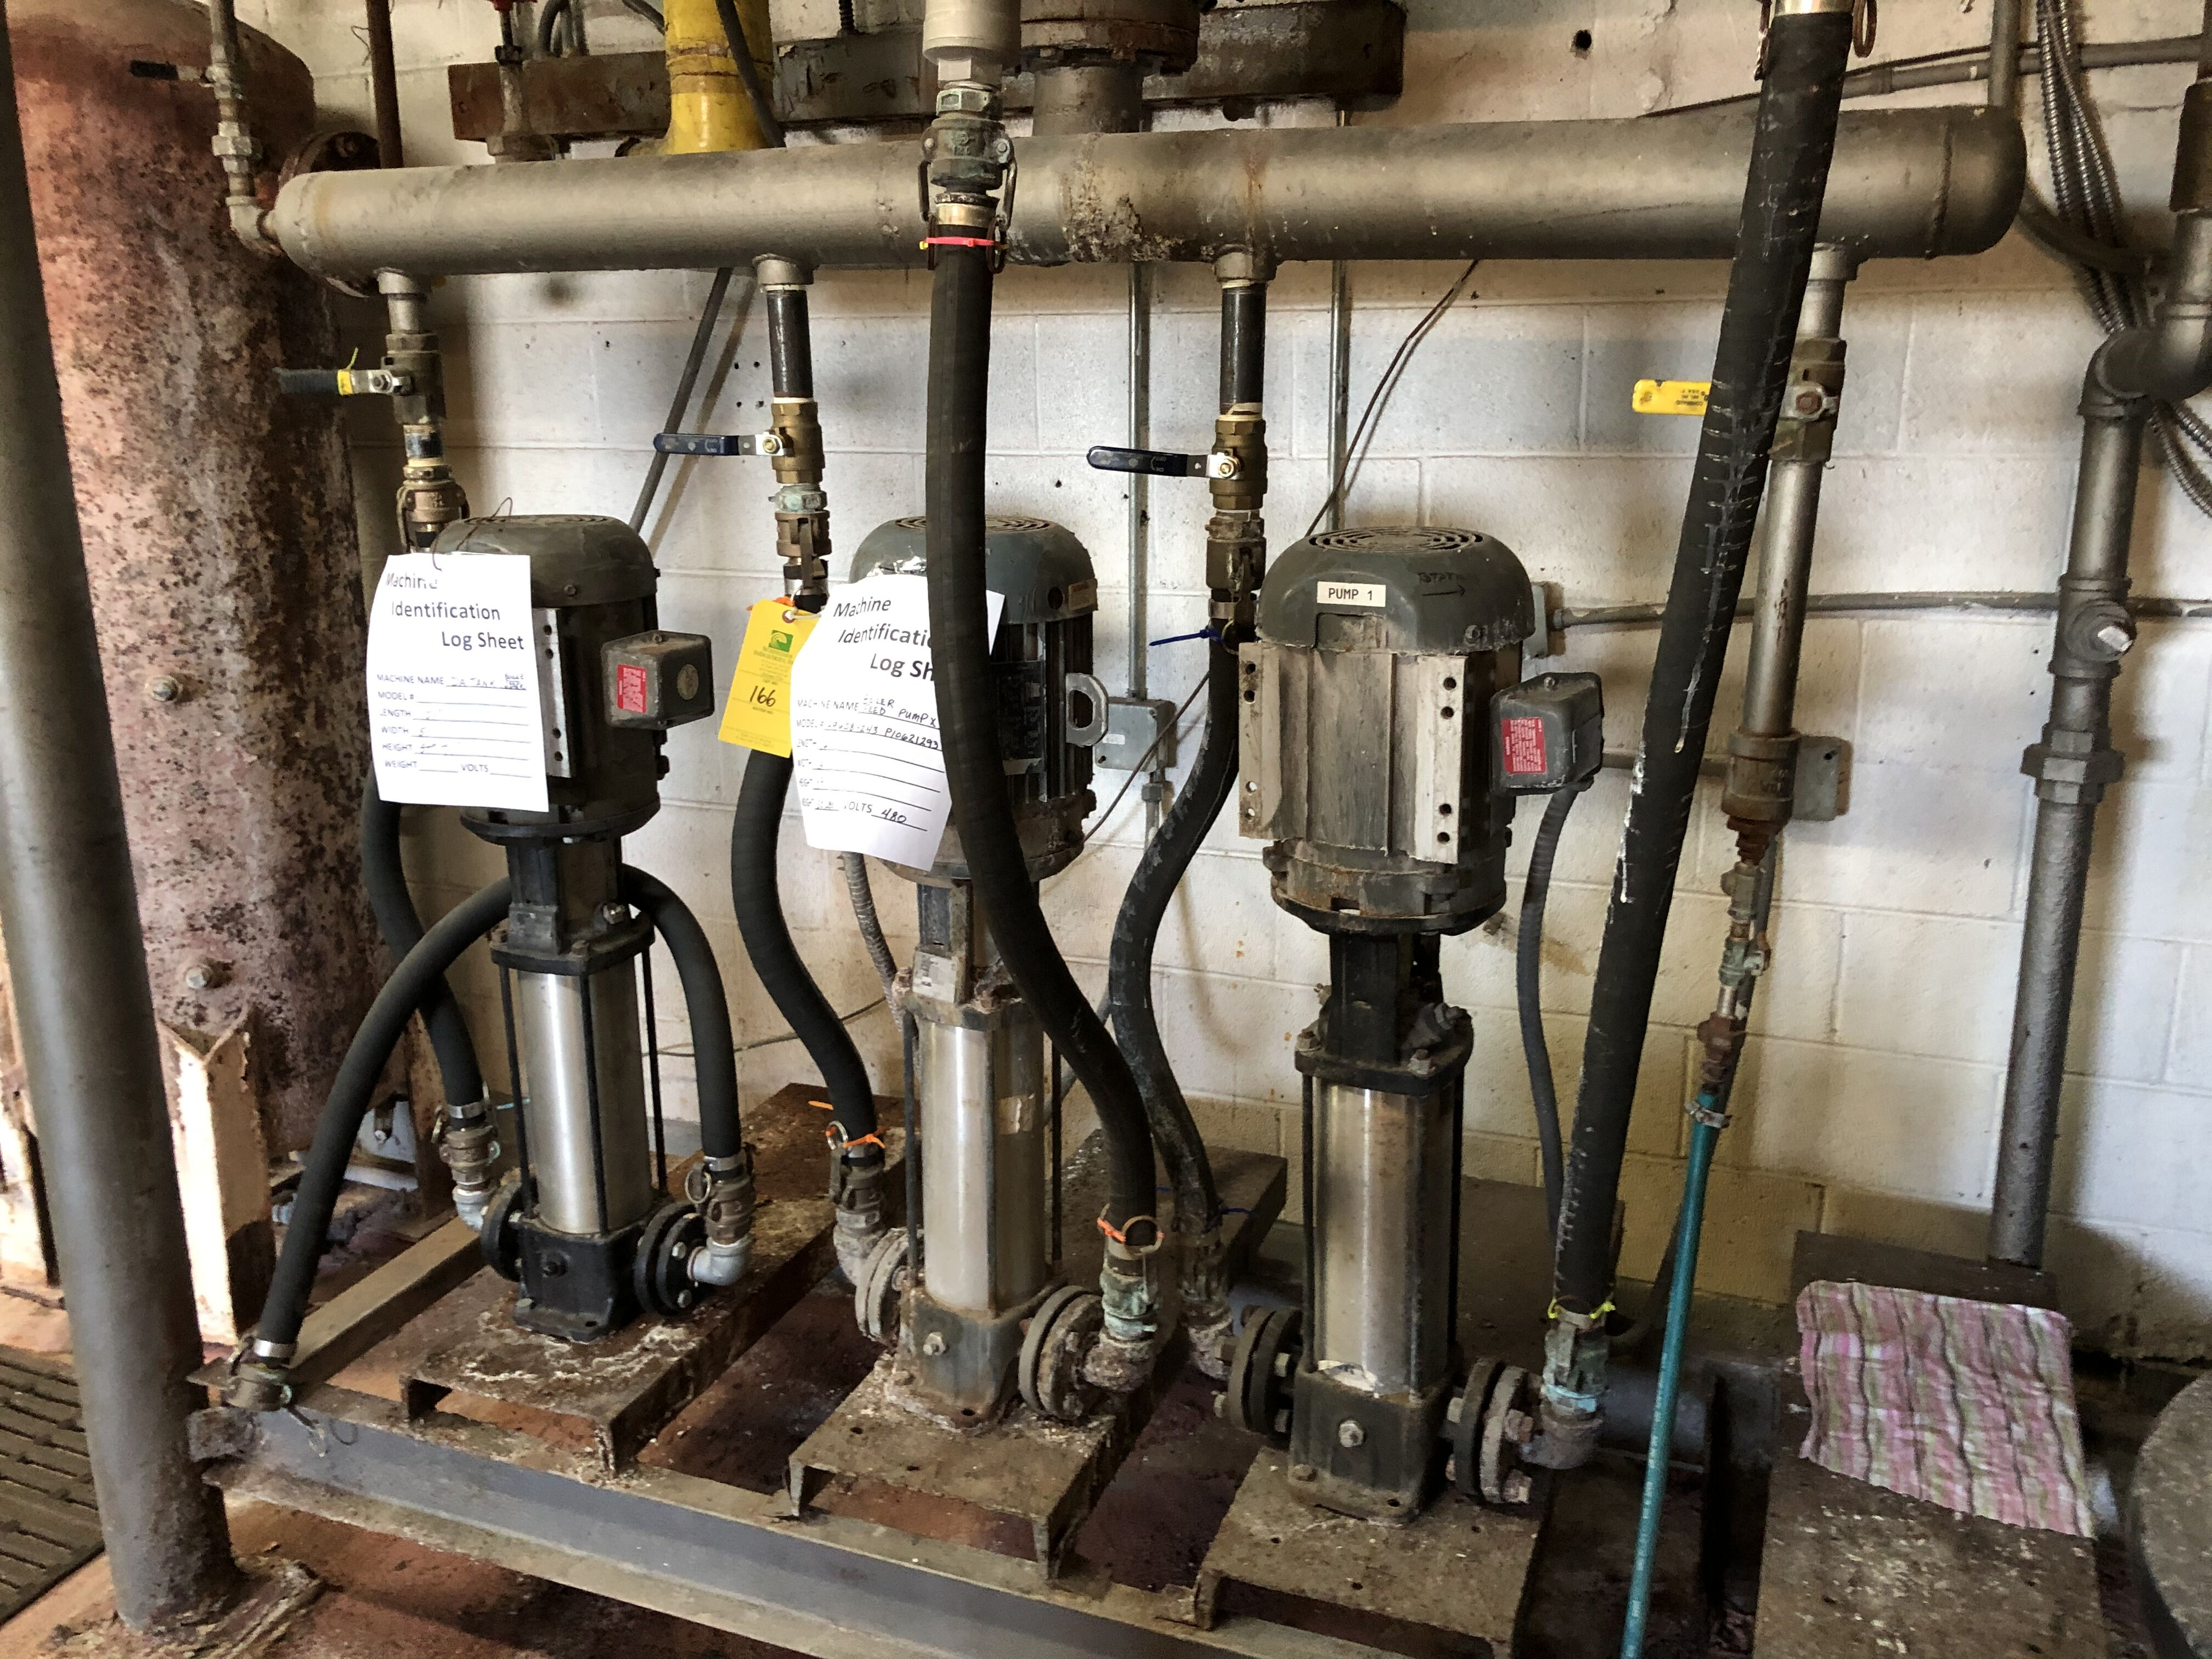 Lot 166 - (3) Boiler Feed Pumps (All on 1 Frame), Model # A96084243-P10621293, 480 Volts